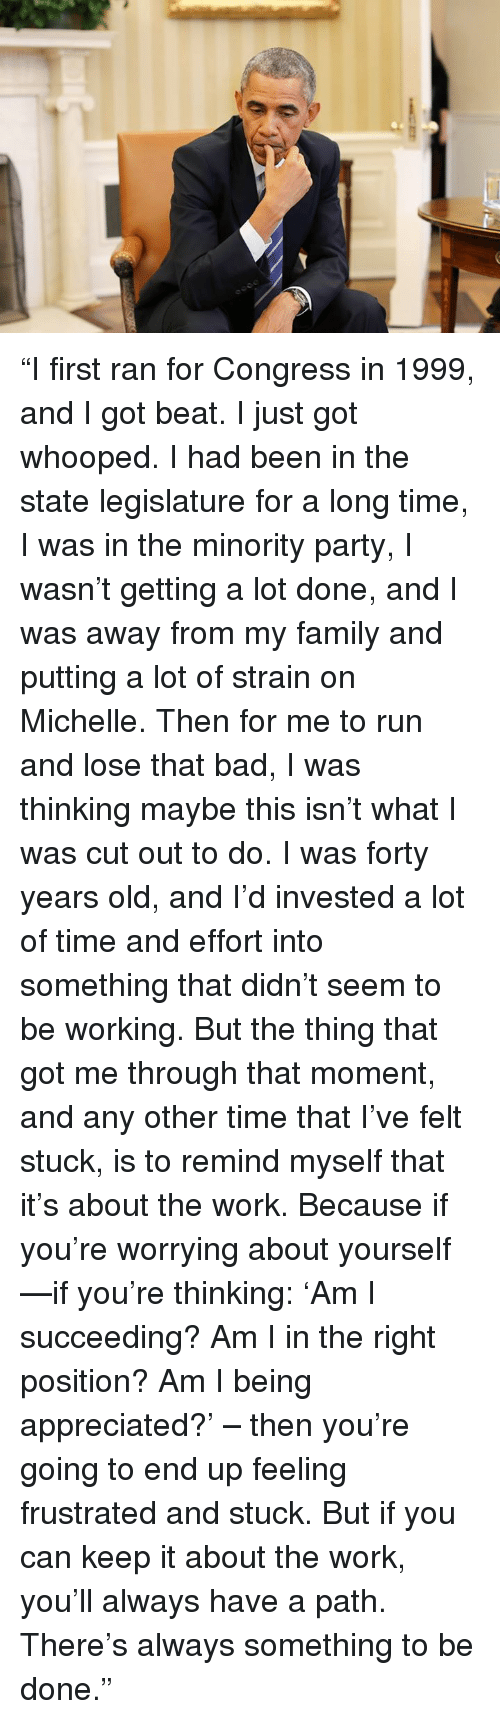 """Worry About Yourself: """"I first ran for Congress in 1999, and I got beat. I just got whooped. I had been in the state legislature for a long time, I was in the minority party, I wasn't getting a lot done, and I was away from my family and putting a lot of strain on Michelle. Then for me to run and lose that bad, I was thinking maybe this isn't what I was cut out to do. I was forty years old, and I'd invested a lot of time and effort into something that didn't seem to be working. But the thing that got me through that moment, and any other time that I've felt stuck, is to remind myself that it's about the work. Because if you're worrying about yourself—if you're thinking: 'Am I succeeding? Am I in the right position? Am I being appreciated?' – then you're going to end up feeling frustrated and stuck. But if you can keep it about the work, you'll always have a path. There's always something to be done."""""""